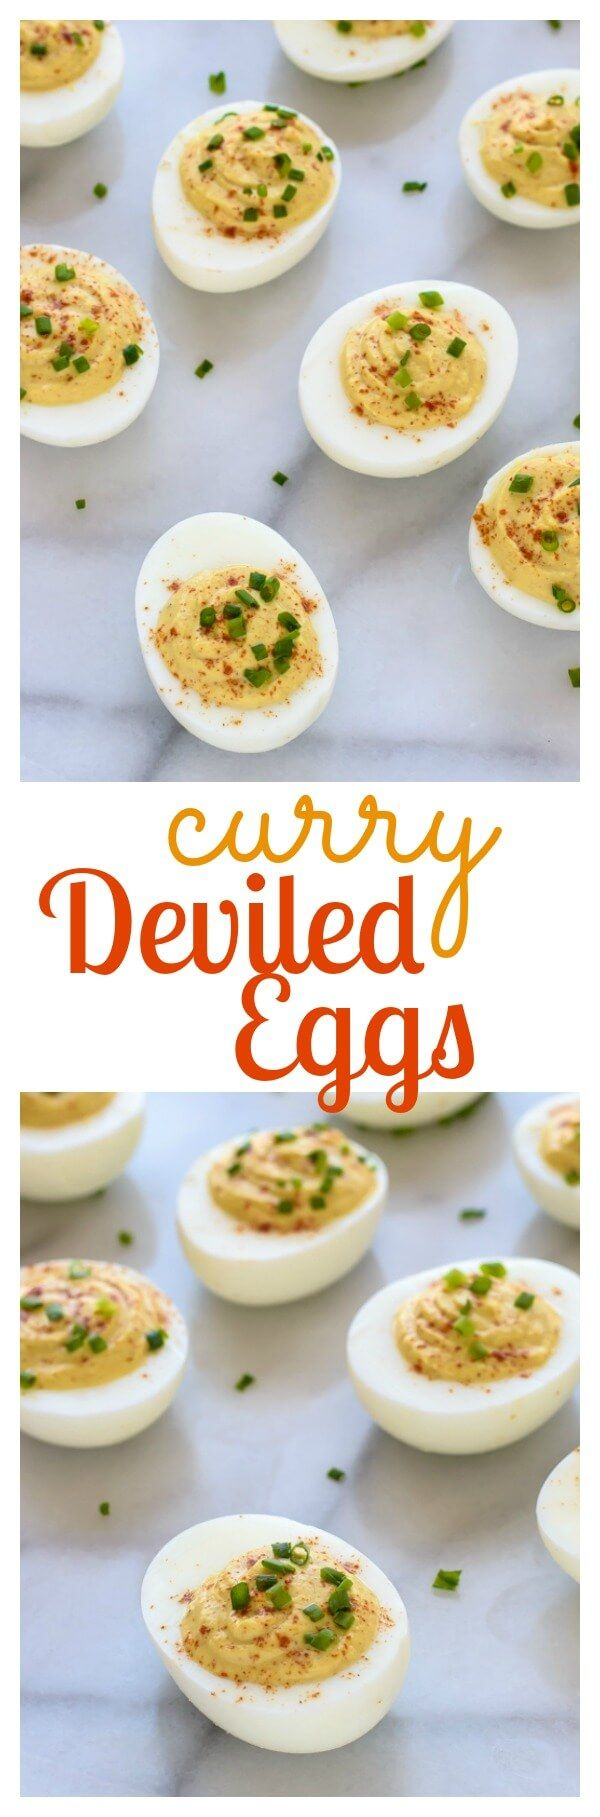 Curried Deviled Eggs. A yummy spin on classic deviled eggs that are a hit at any party! Perfect Easter recipe for entertaining or to use up those leftover Easter eggs.   www.wellplated.com @wellplated: